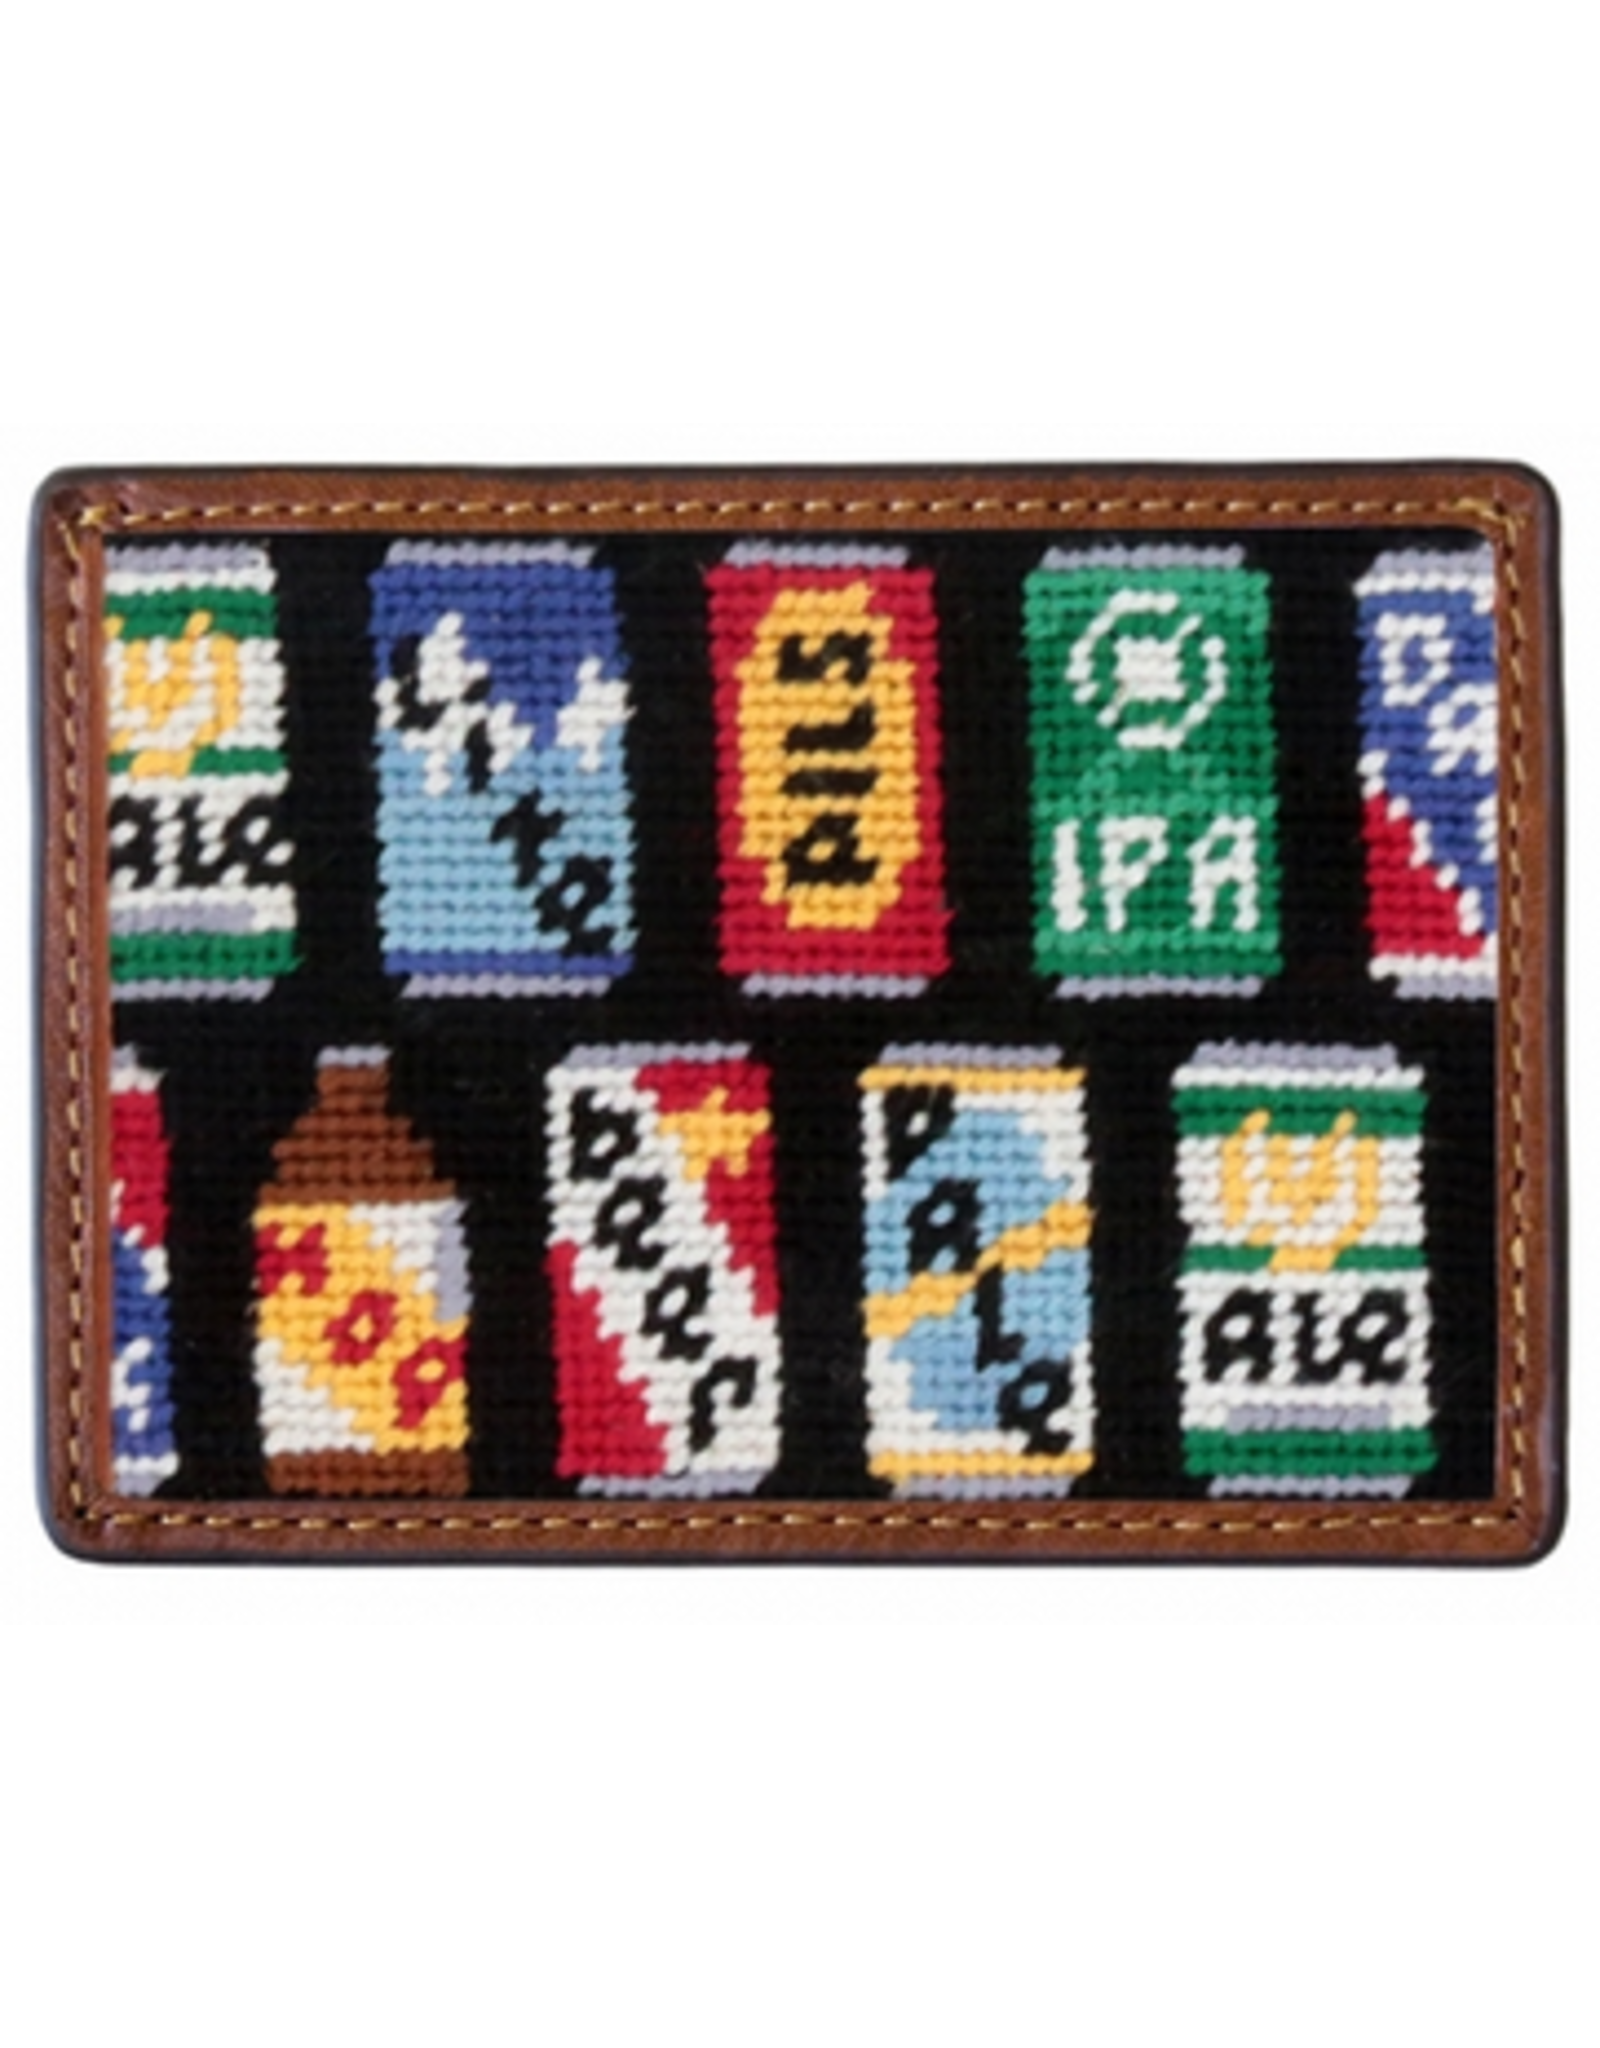 Smathers & Branson Beer Cans Card Wallet